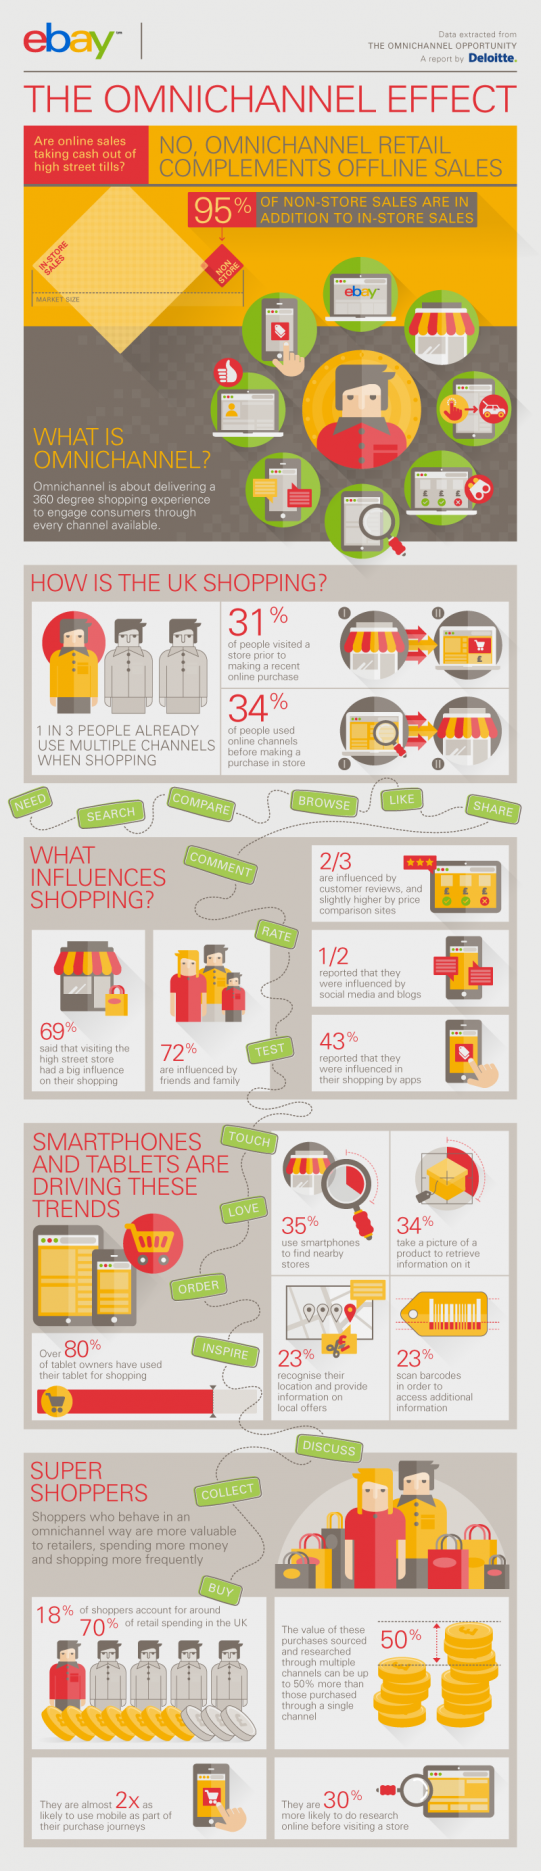 The Omnichannel Effect